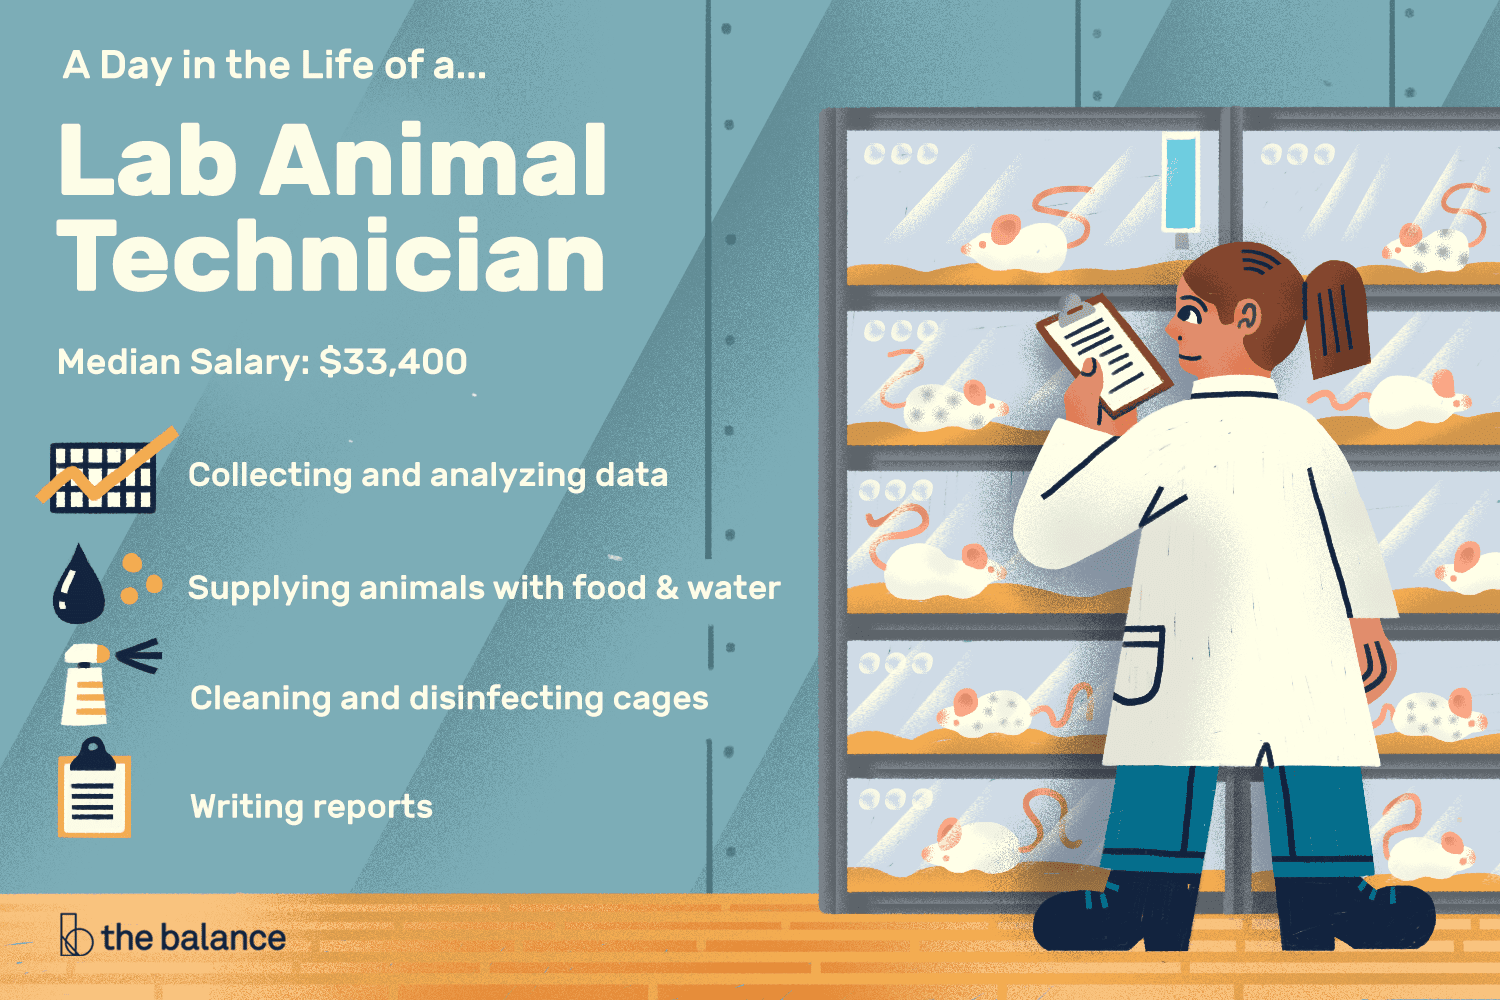 Lab Animal Technician Job Description: Salary, Skills, & More